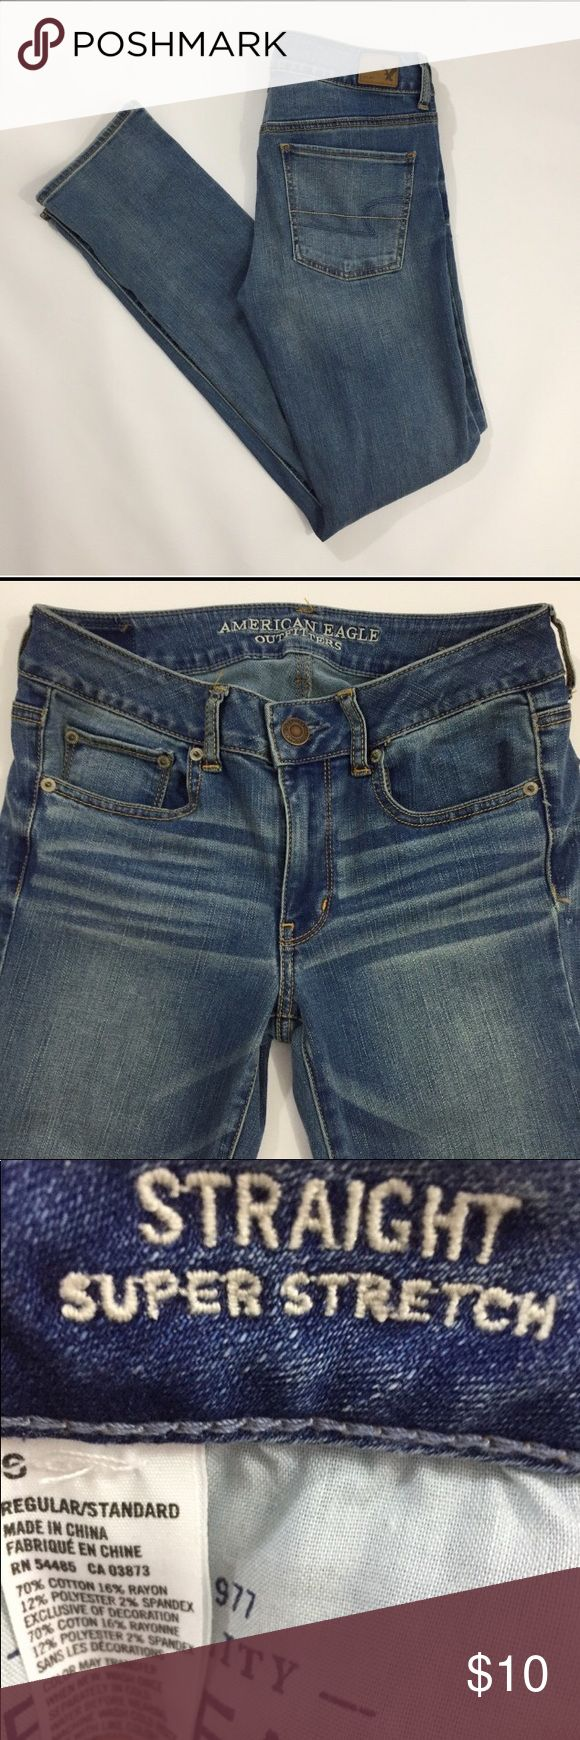 American Eagle super stretch jeans 👖 *re-posh* American Eagle super stretch straight leg jeans. Bought these, perfect condition, too small for me. Paid $14, will sell for $10. American Eagle Outfitters Pants Straight Leg